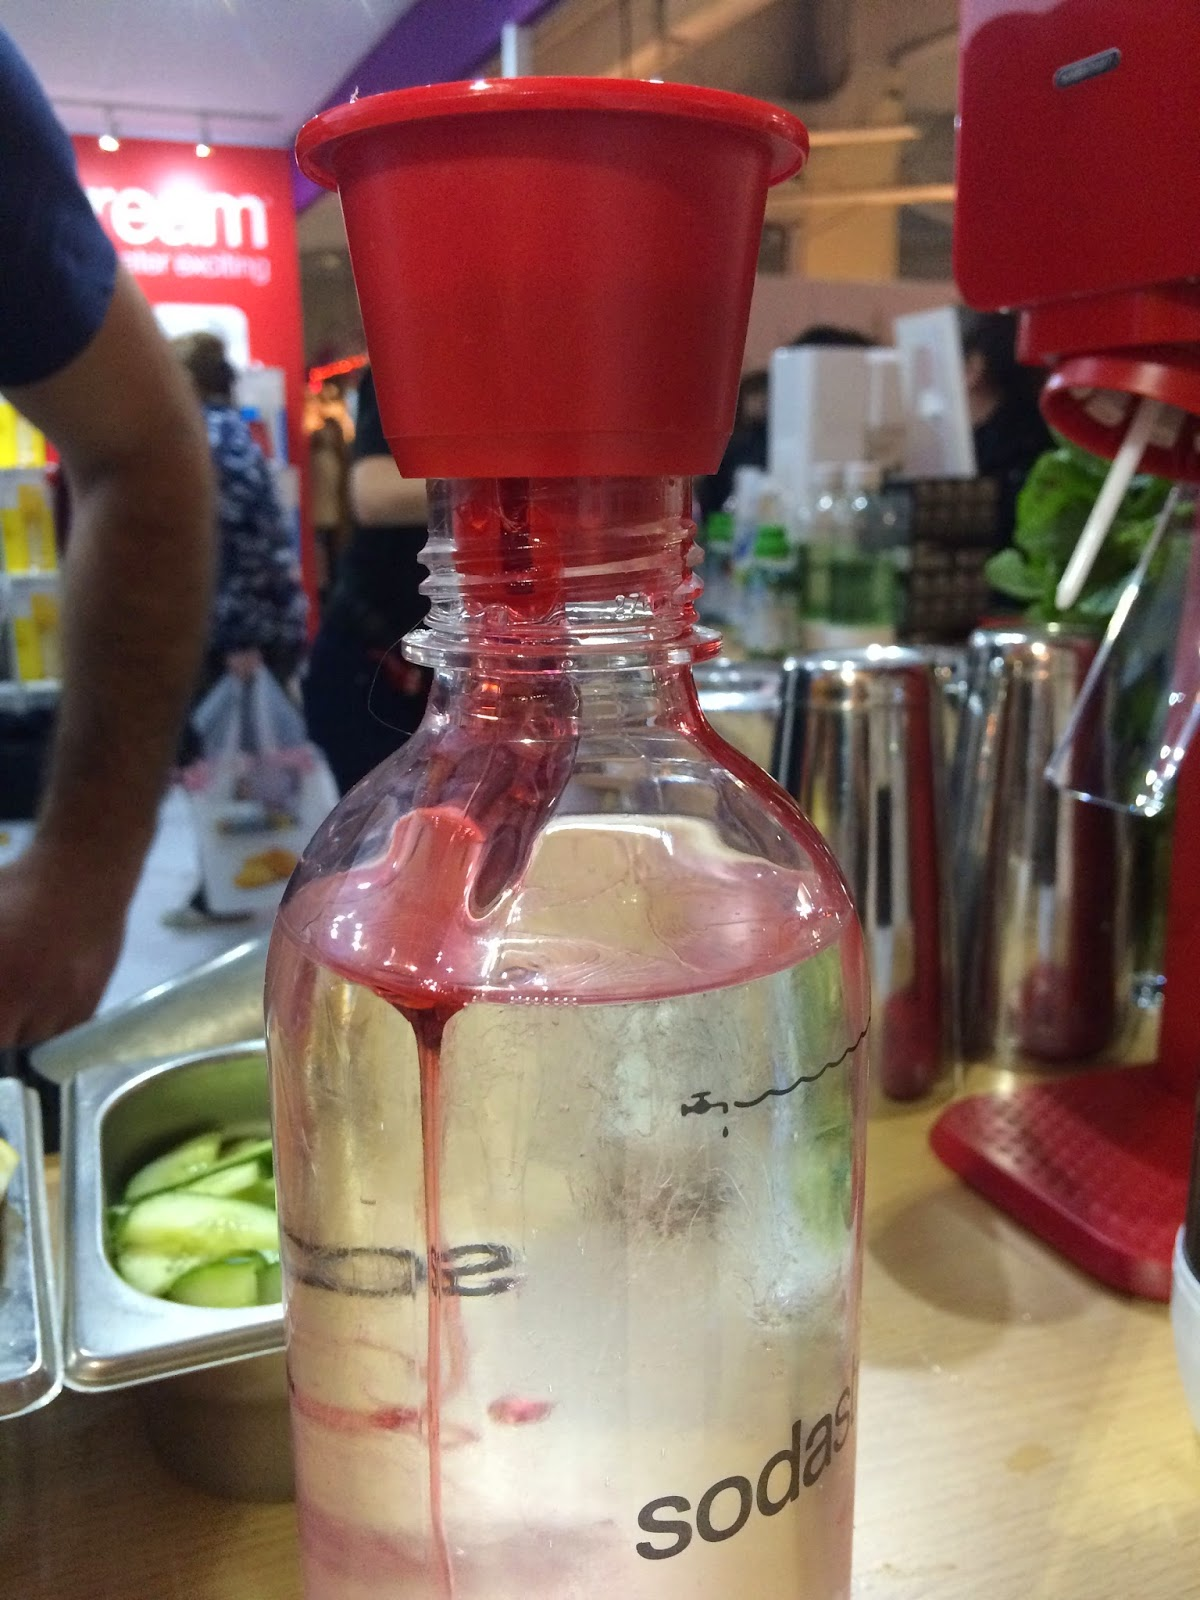 SodaStream Soda Cap dispensing Mocktail Cosmopolitan flavour